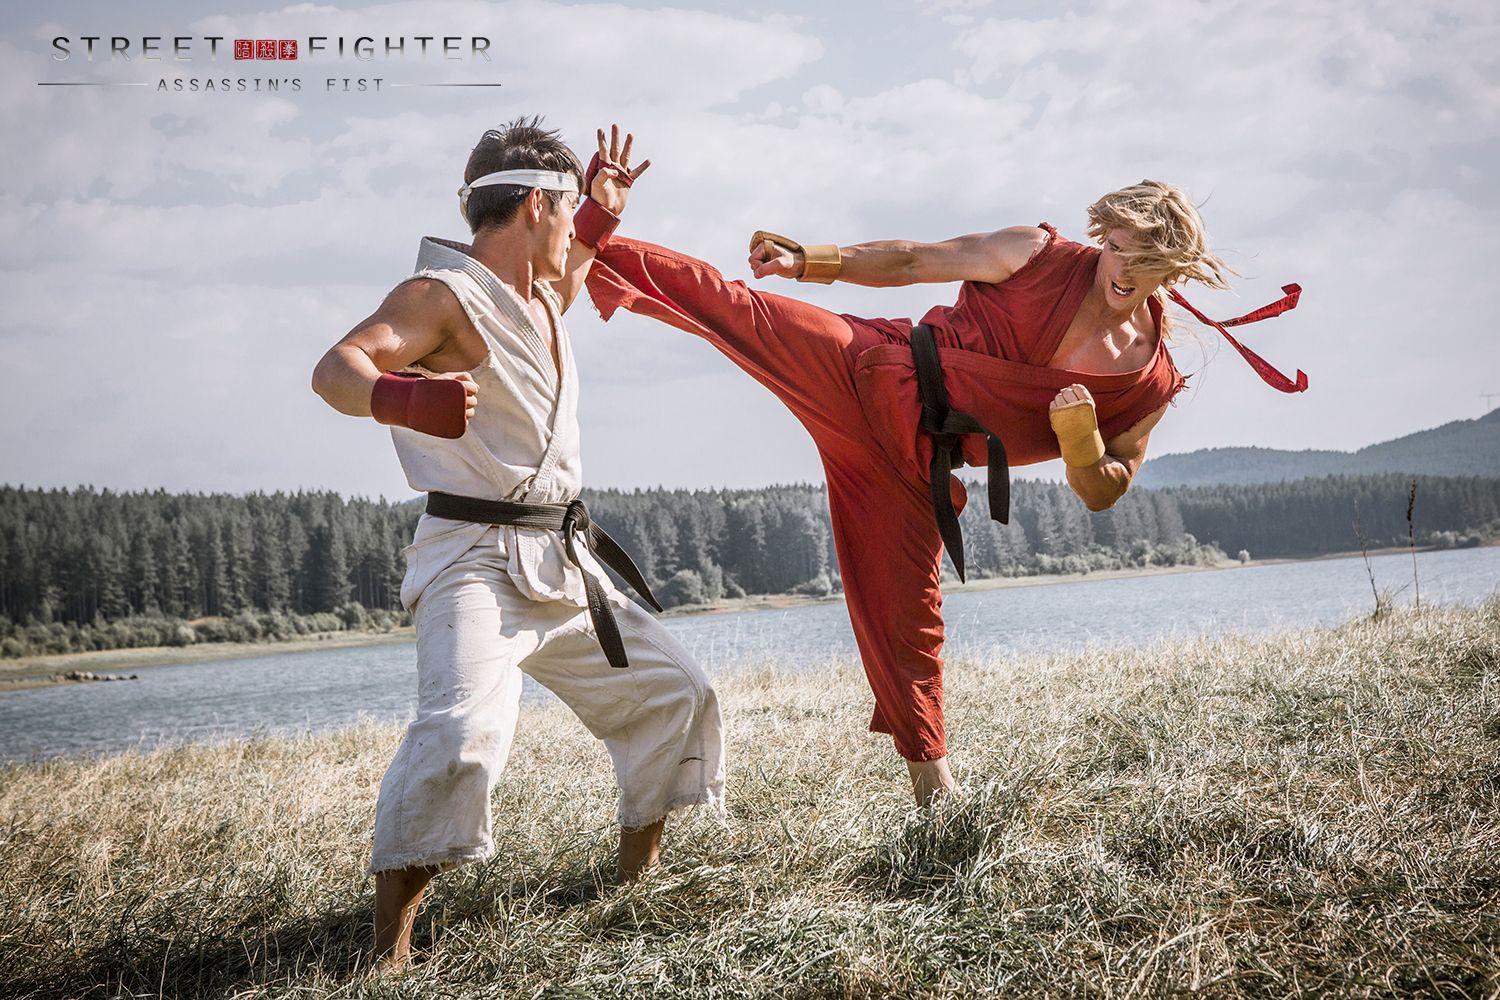 Street-Fighter-Assassins-Fist-image